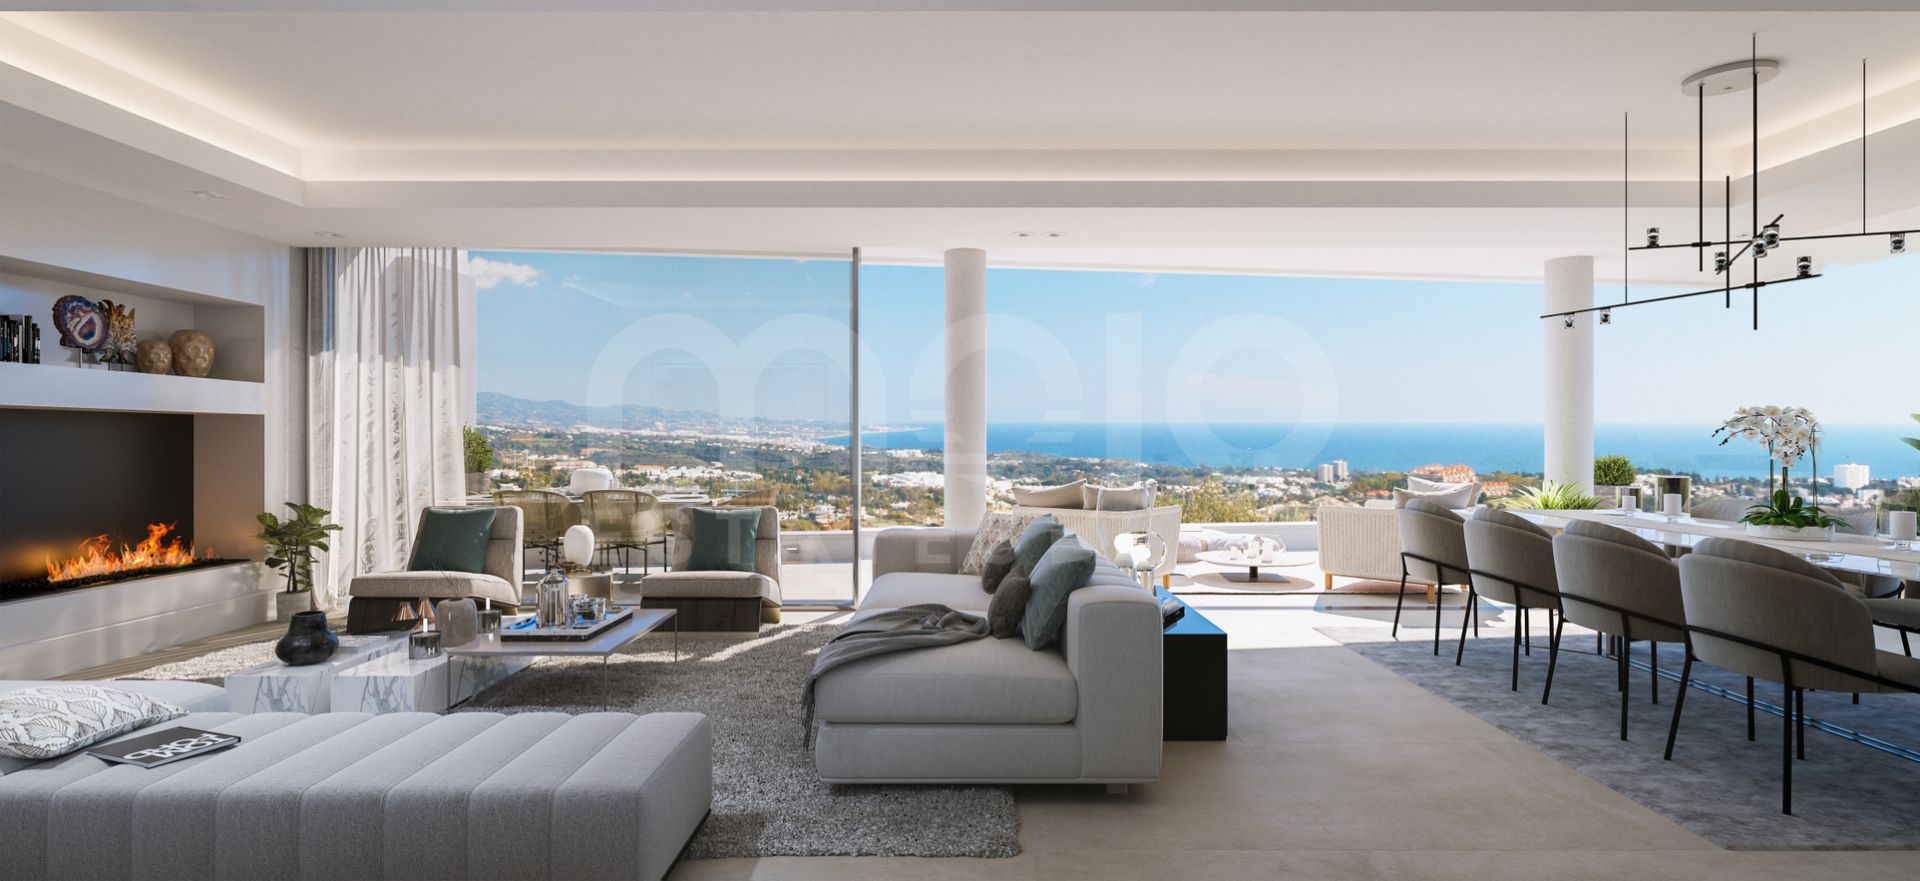 Appartement te koop in La Quinta Golf, Benahavis